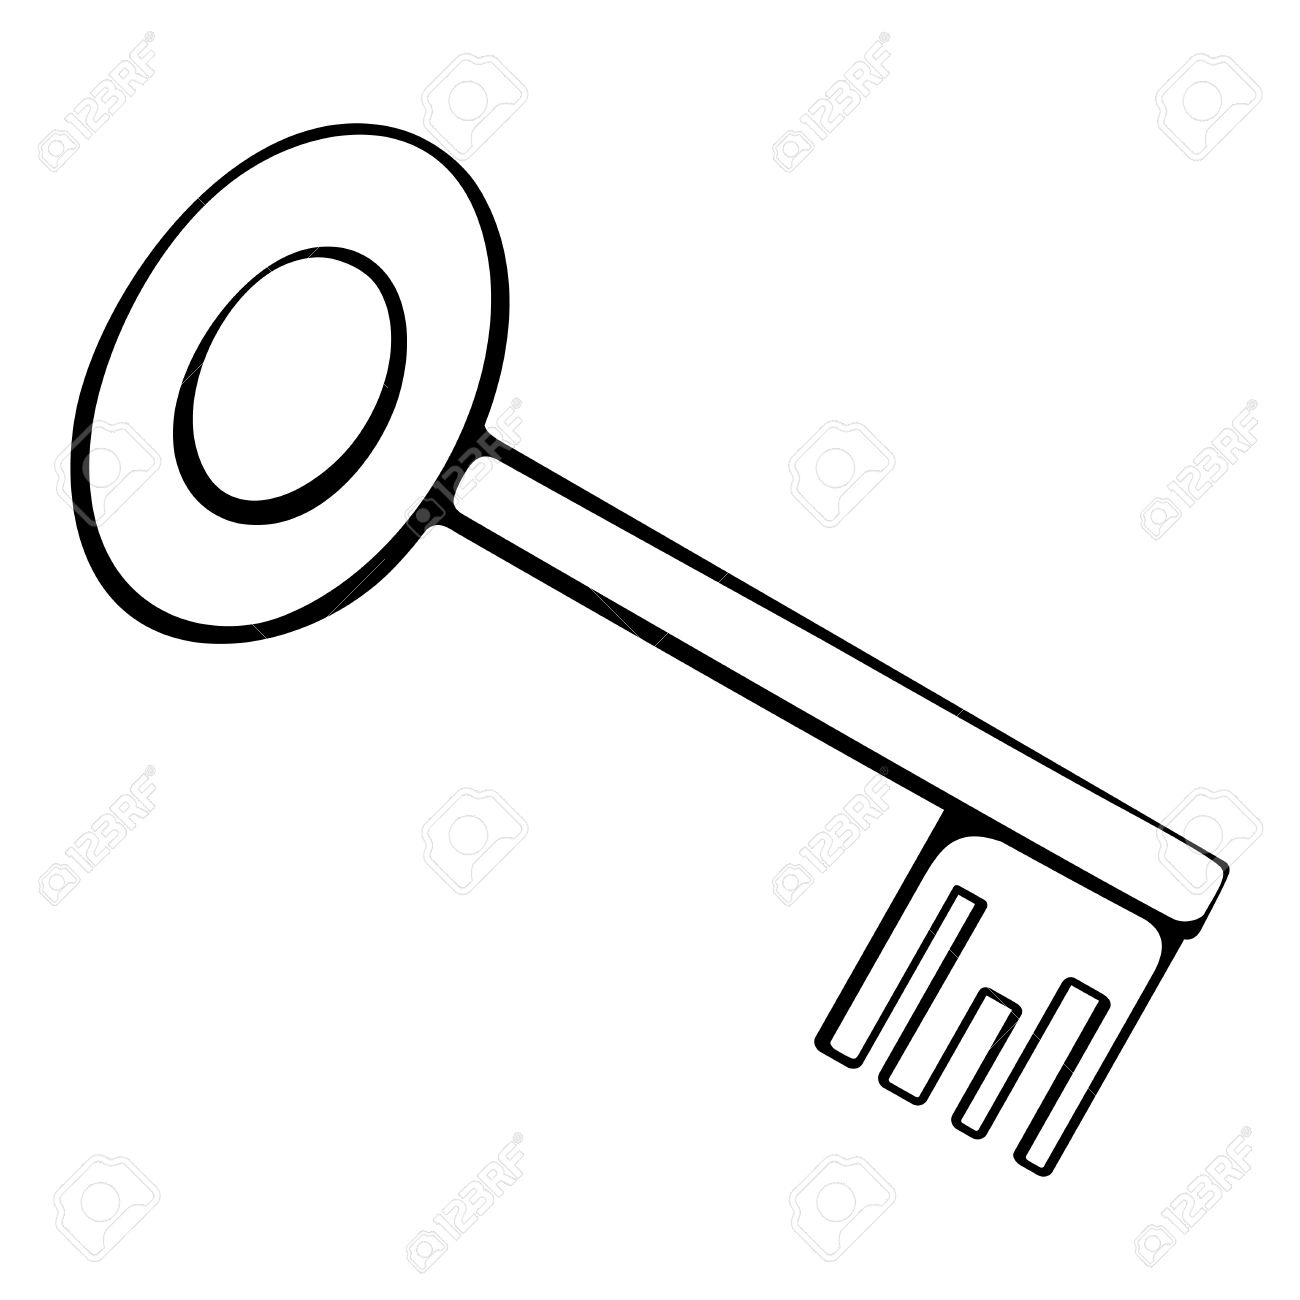 Outline Of A Key Clipart 20 Free Cliparts